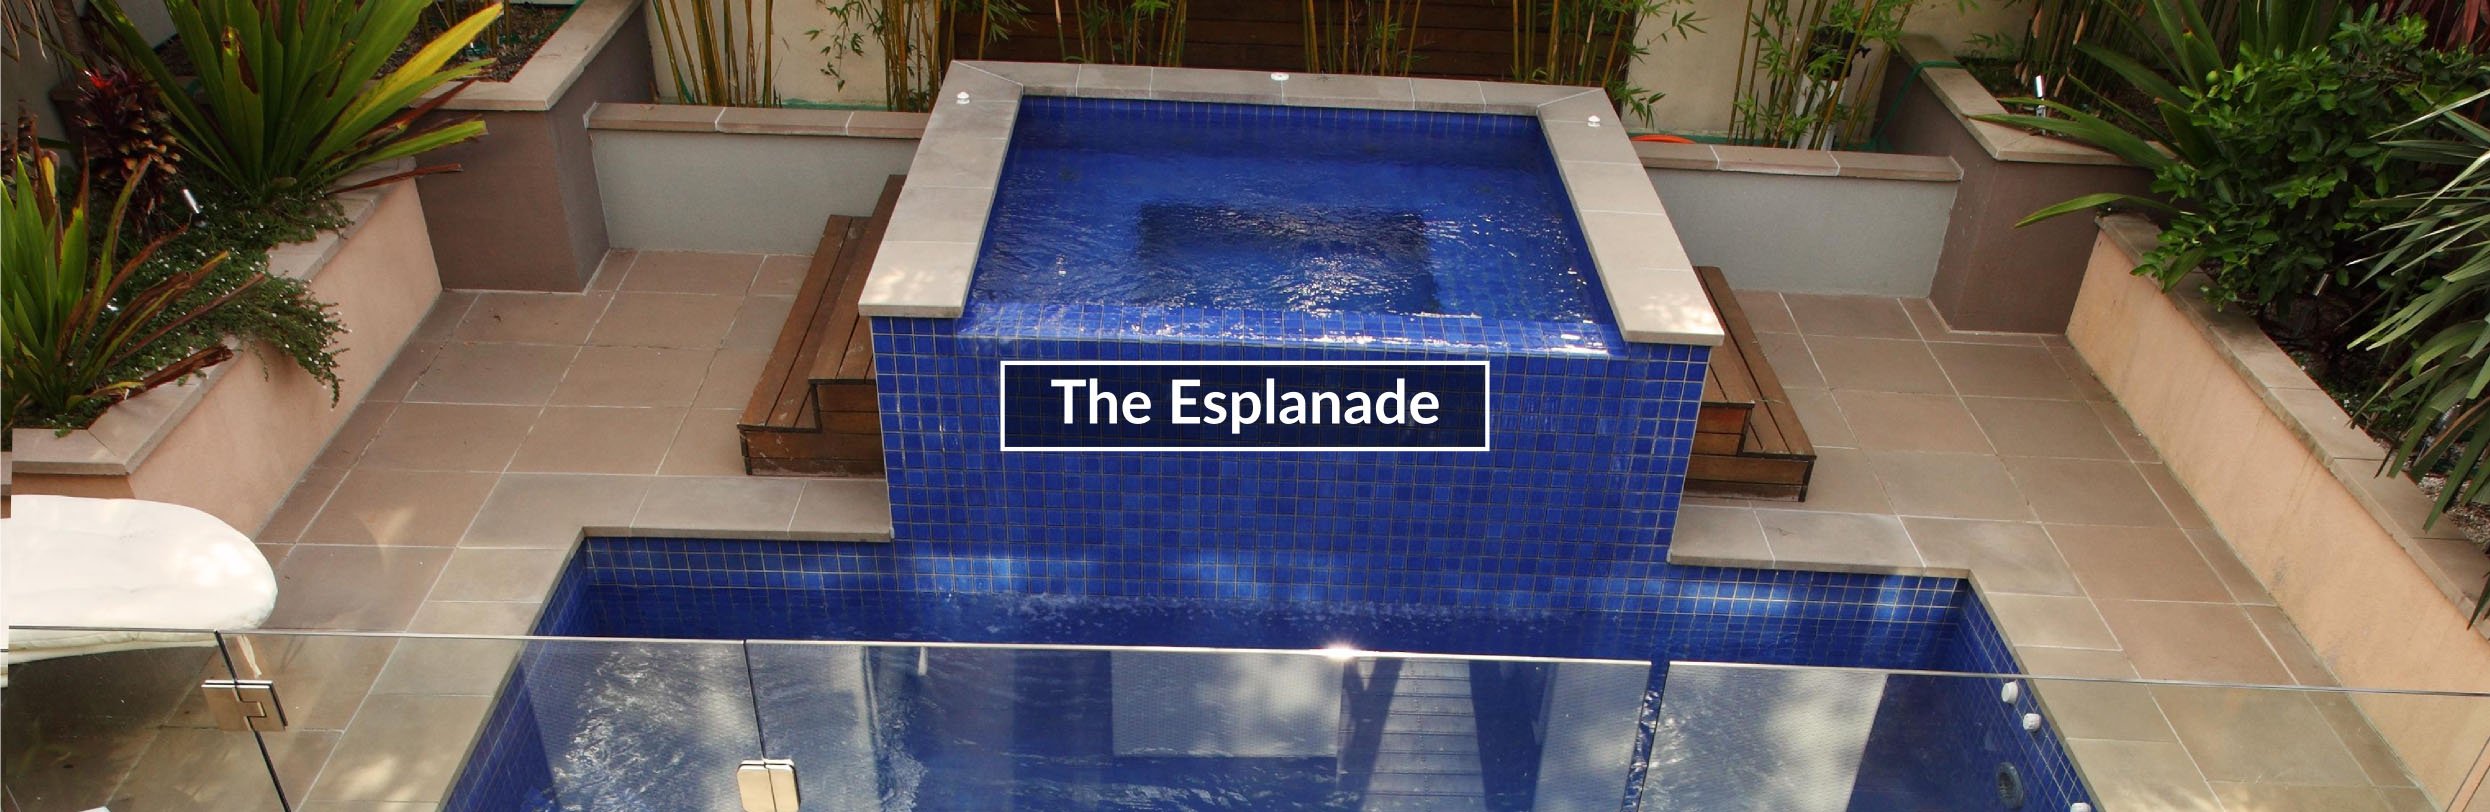 The Esplanade - Kiama Pools Project